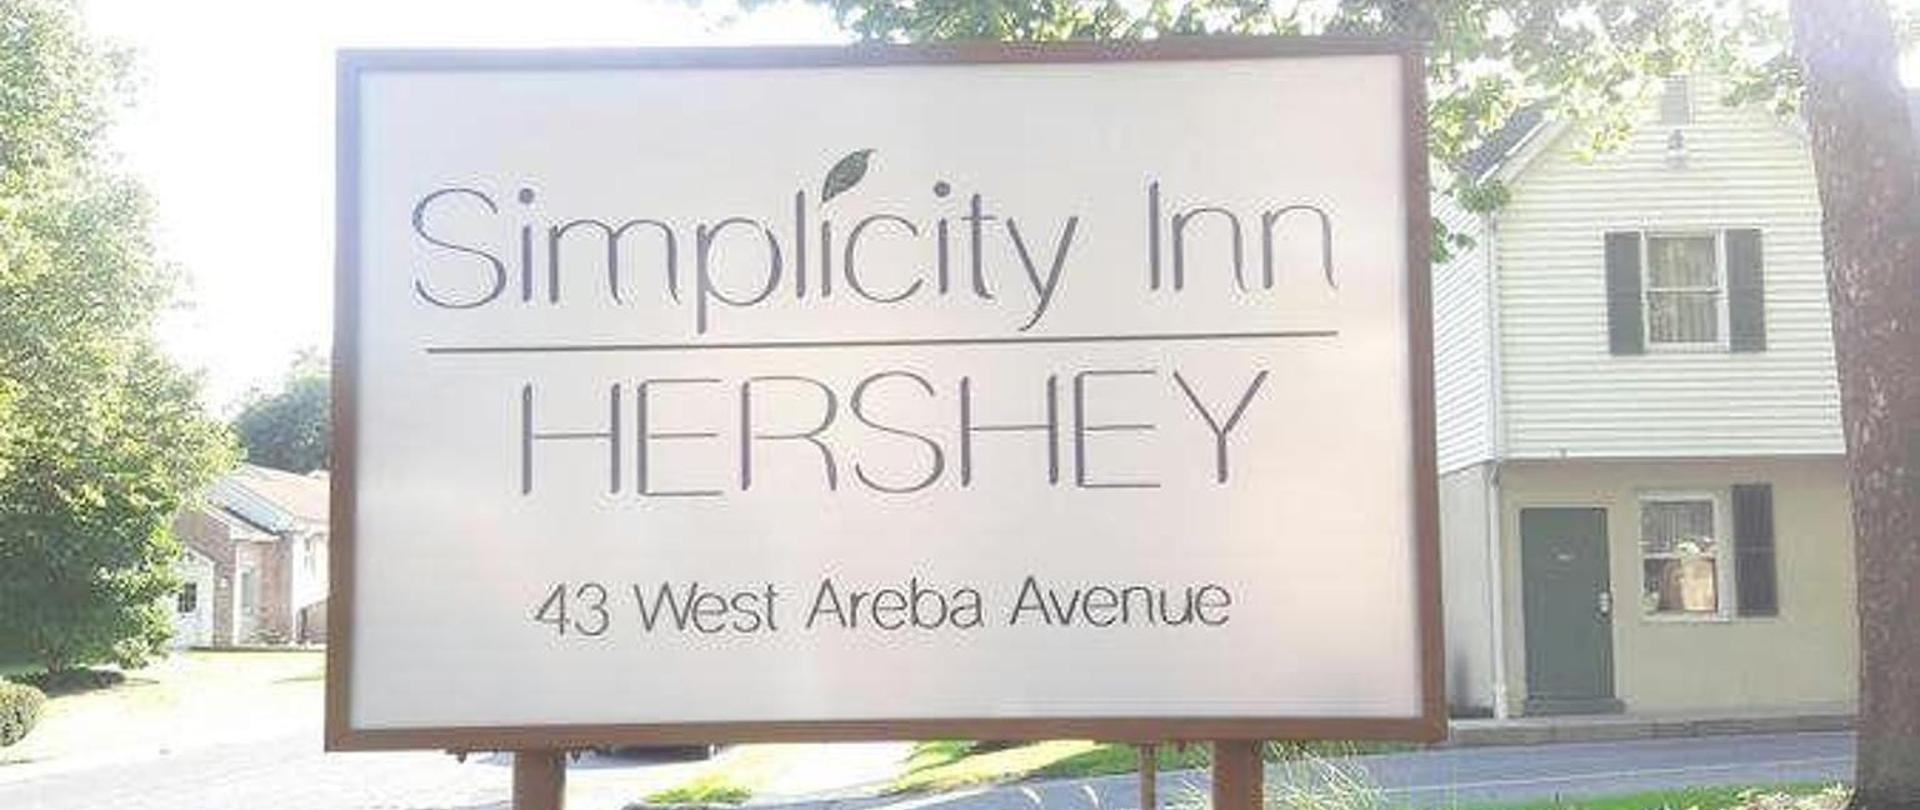 Simplicity Inn Hershey - Hershey - United States of America on map of hershey pa, map of hershey country club, map of breakers hotel, map of hotel bethlehem, map of milton hershey school, map of hershey park, map of hershey lodge lodge, map of the hershey lodge, map of downtown hershey, map of hershey city pennsylvania, map of hershey pennsylvania with cities,